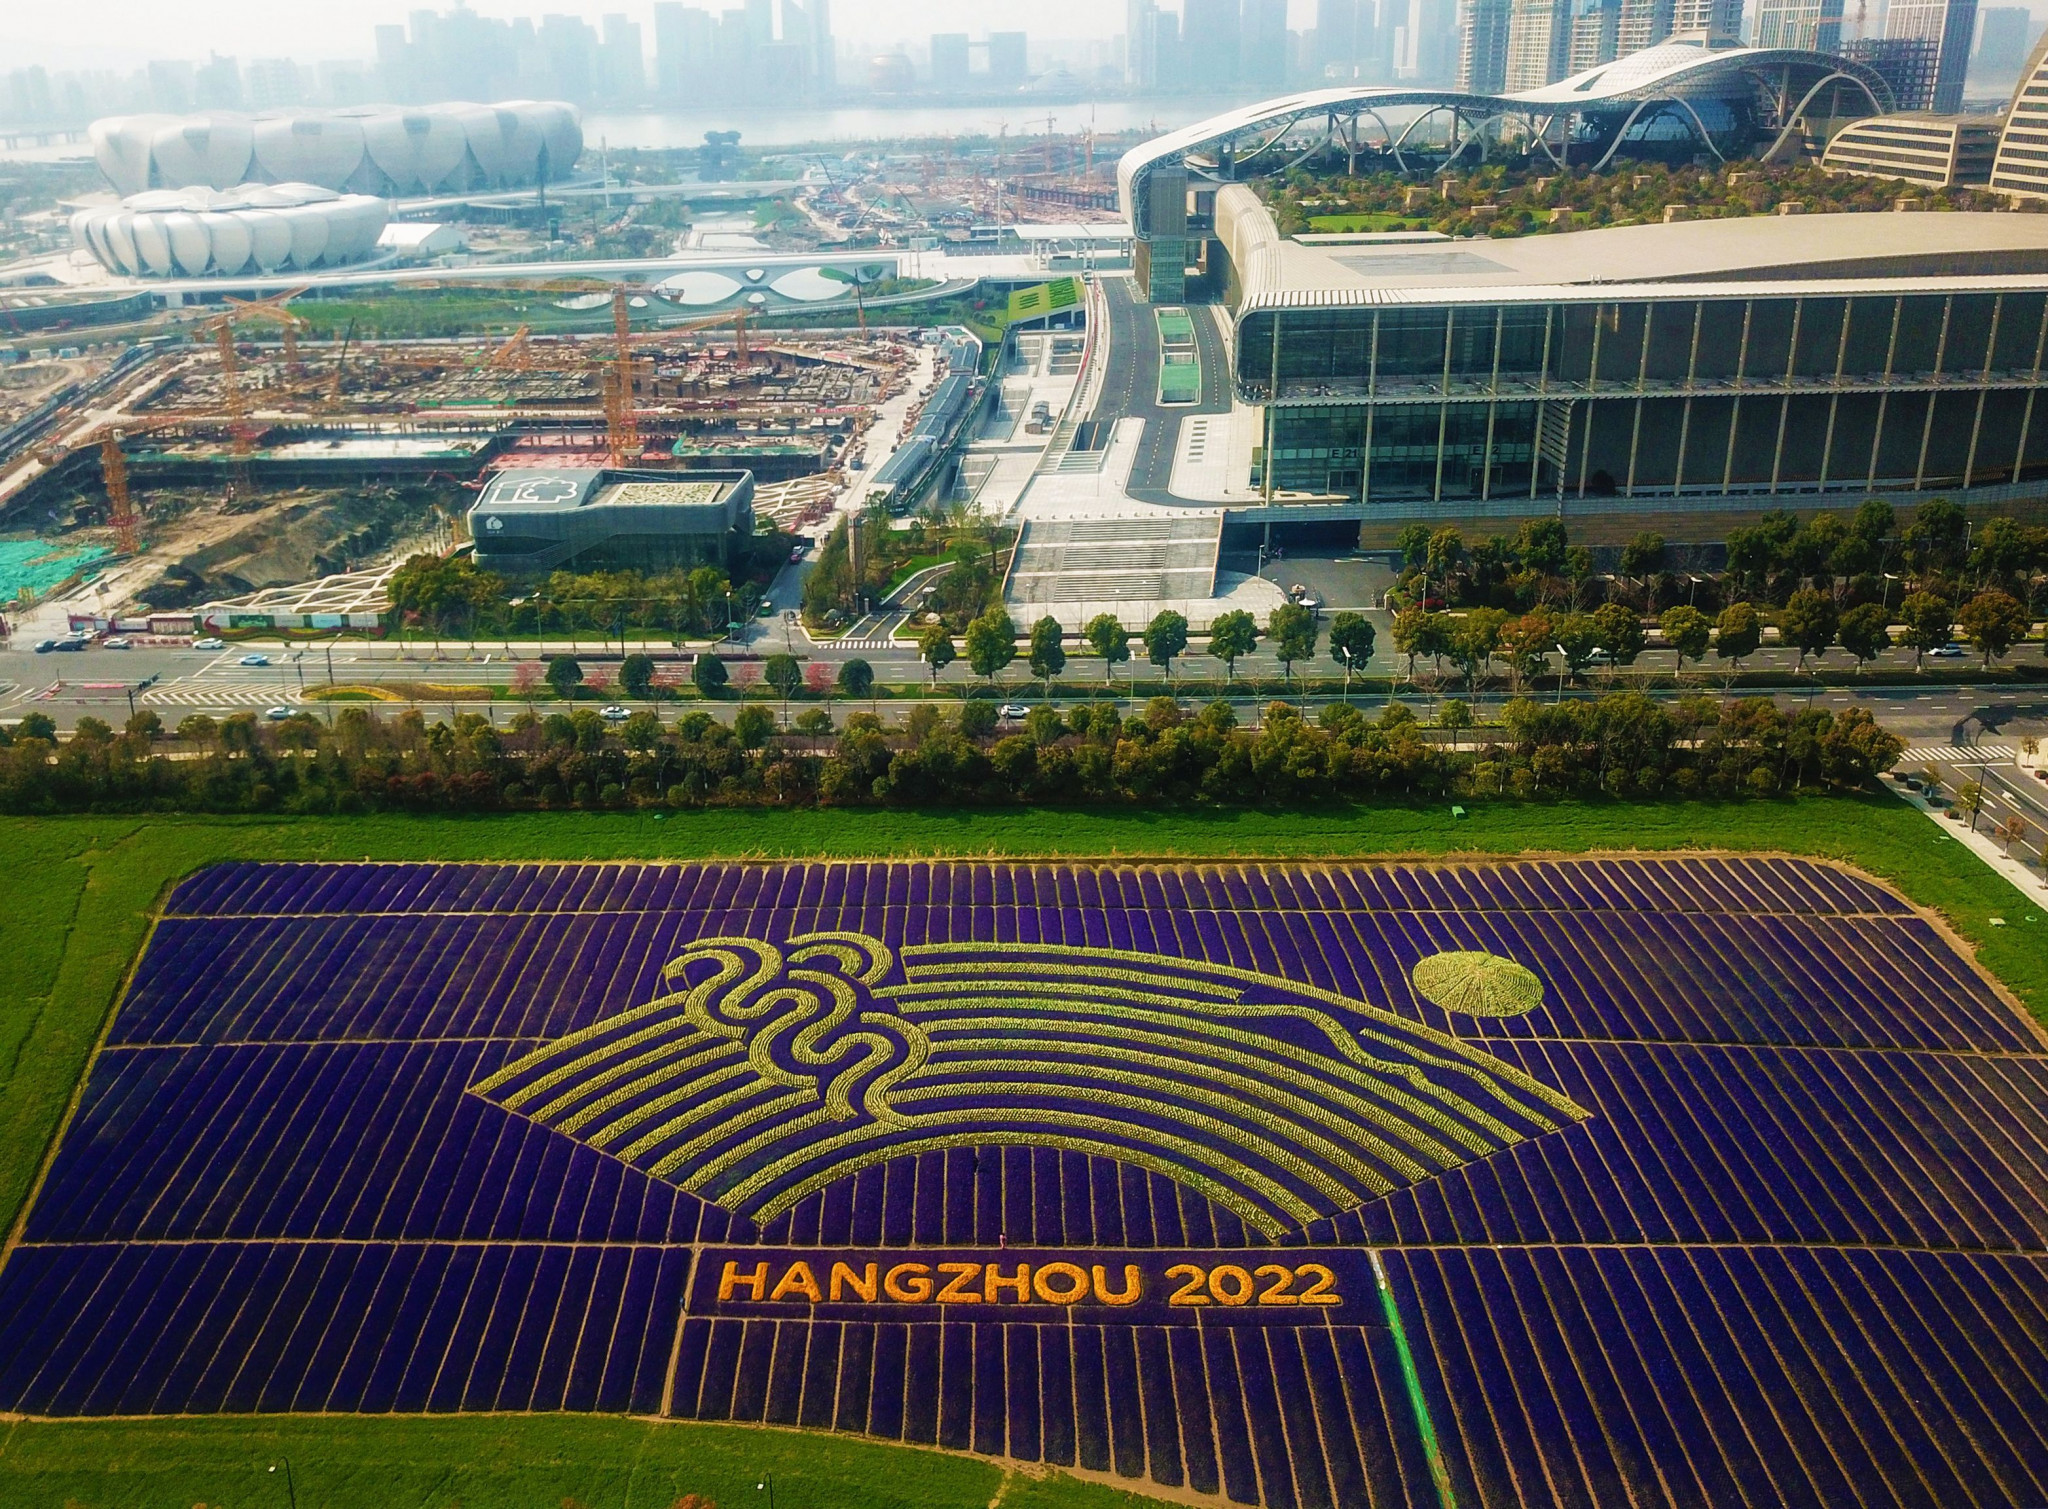 Hangzhou 2022 confident venue construction will be complete by March